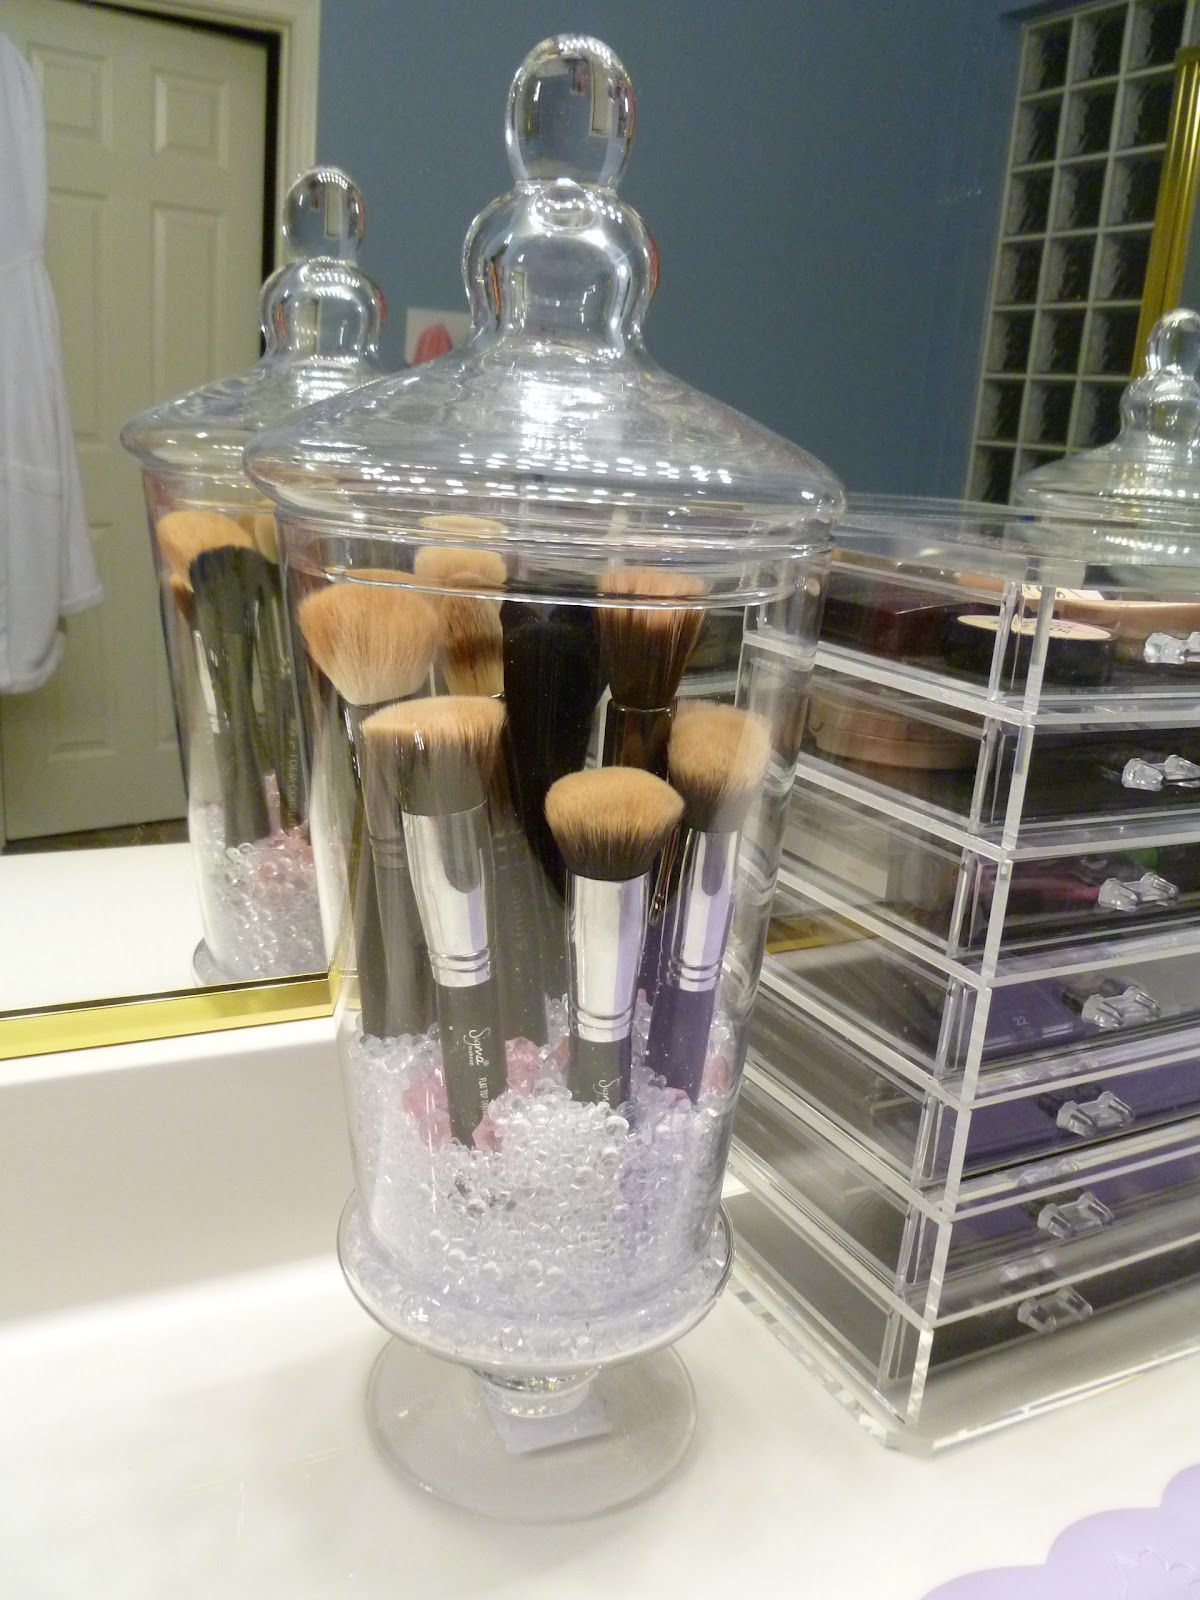 Fabulous way to store AND display makeup brushes! It's a